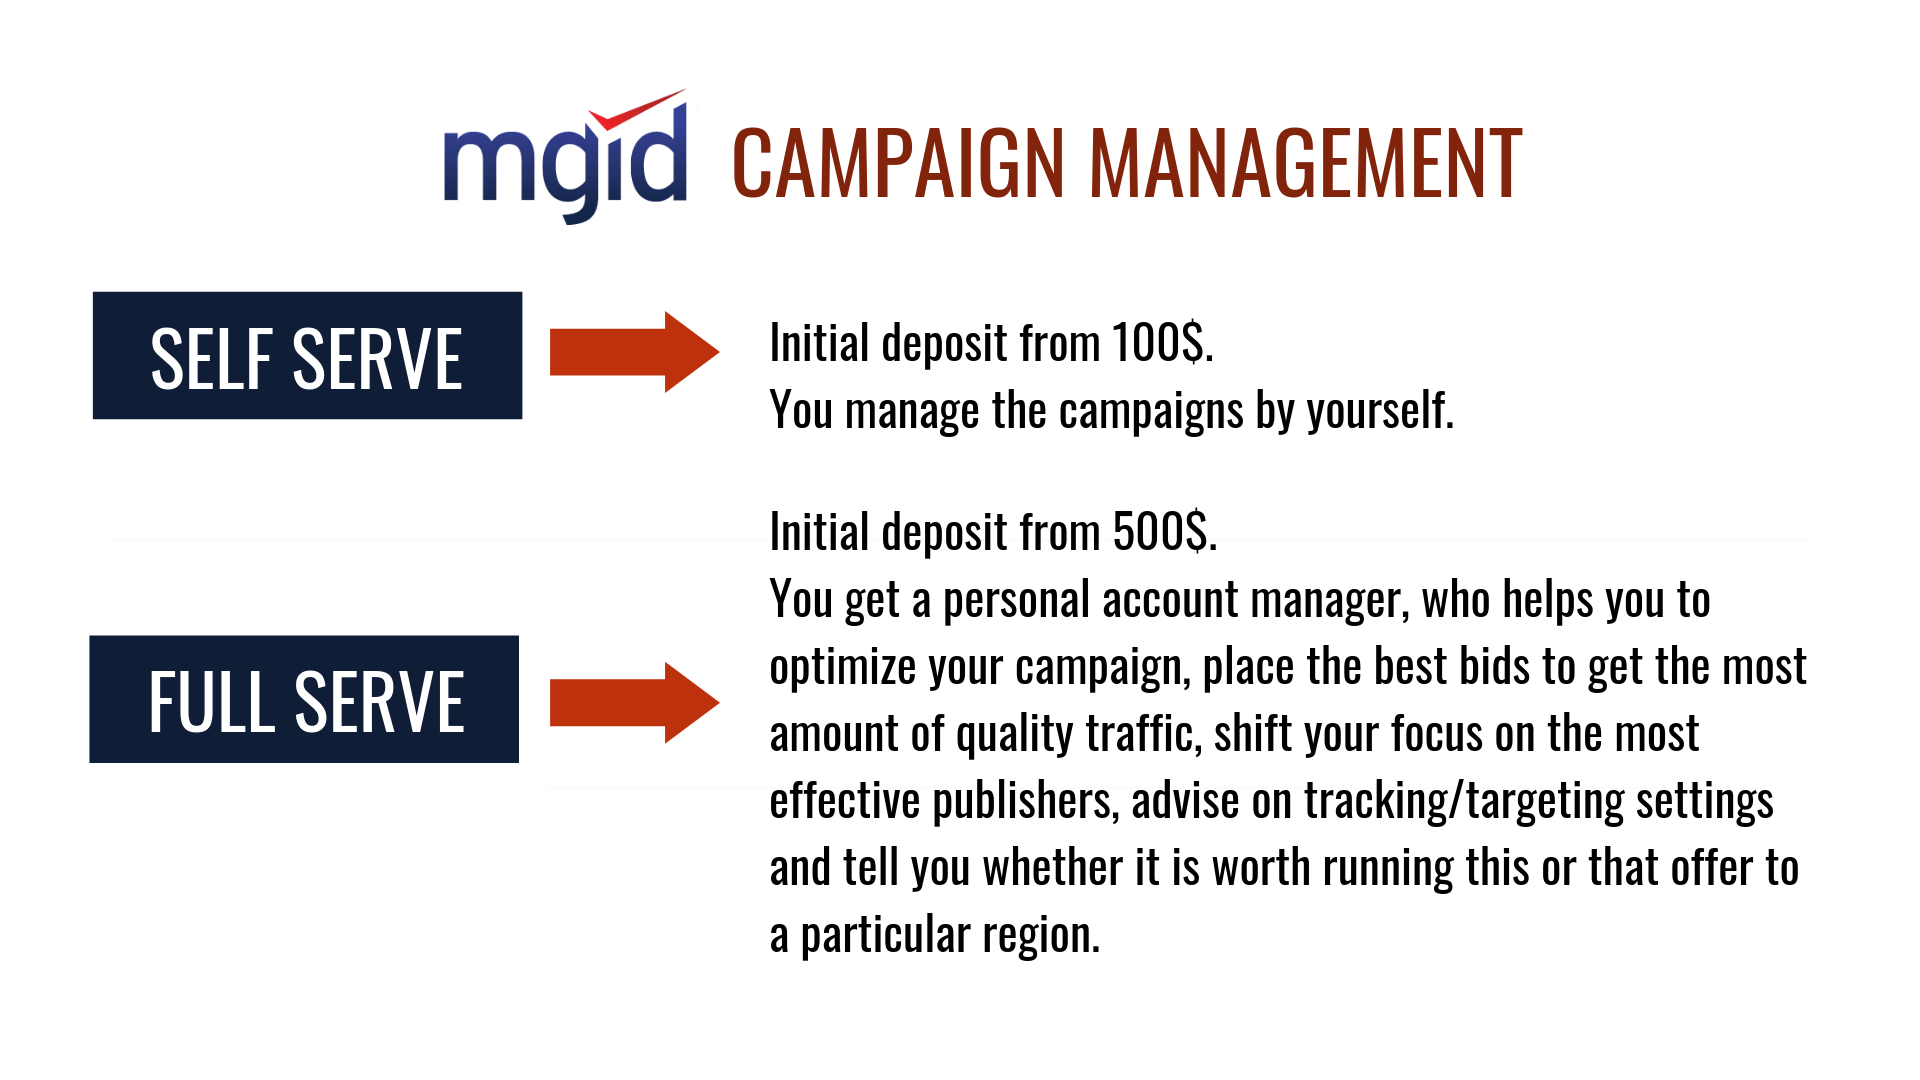 MGID CAMPAIGN MANAGEMENT.png